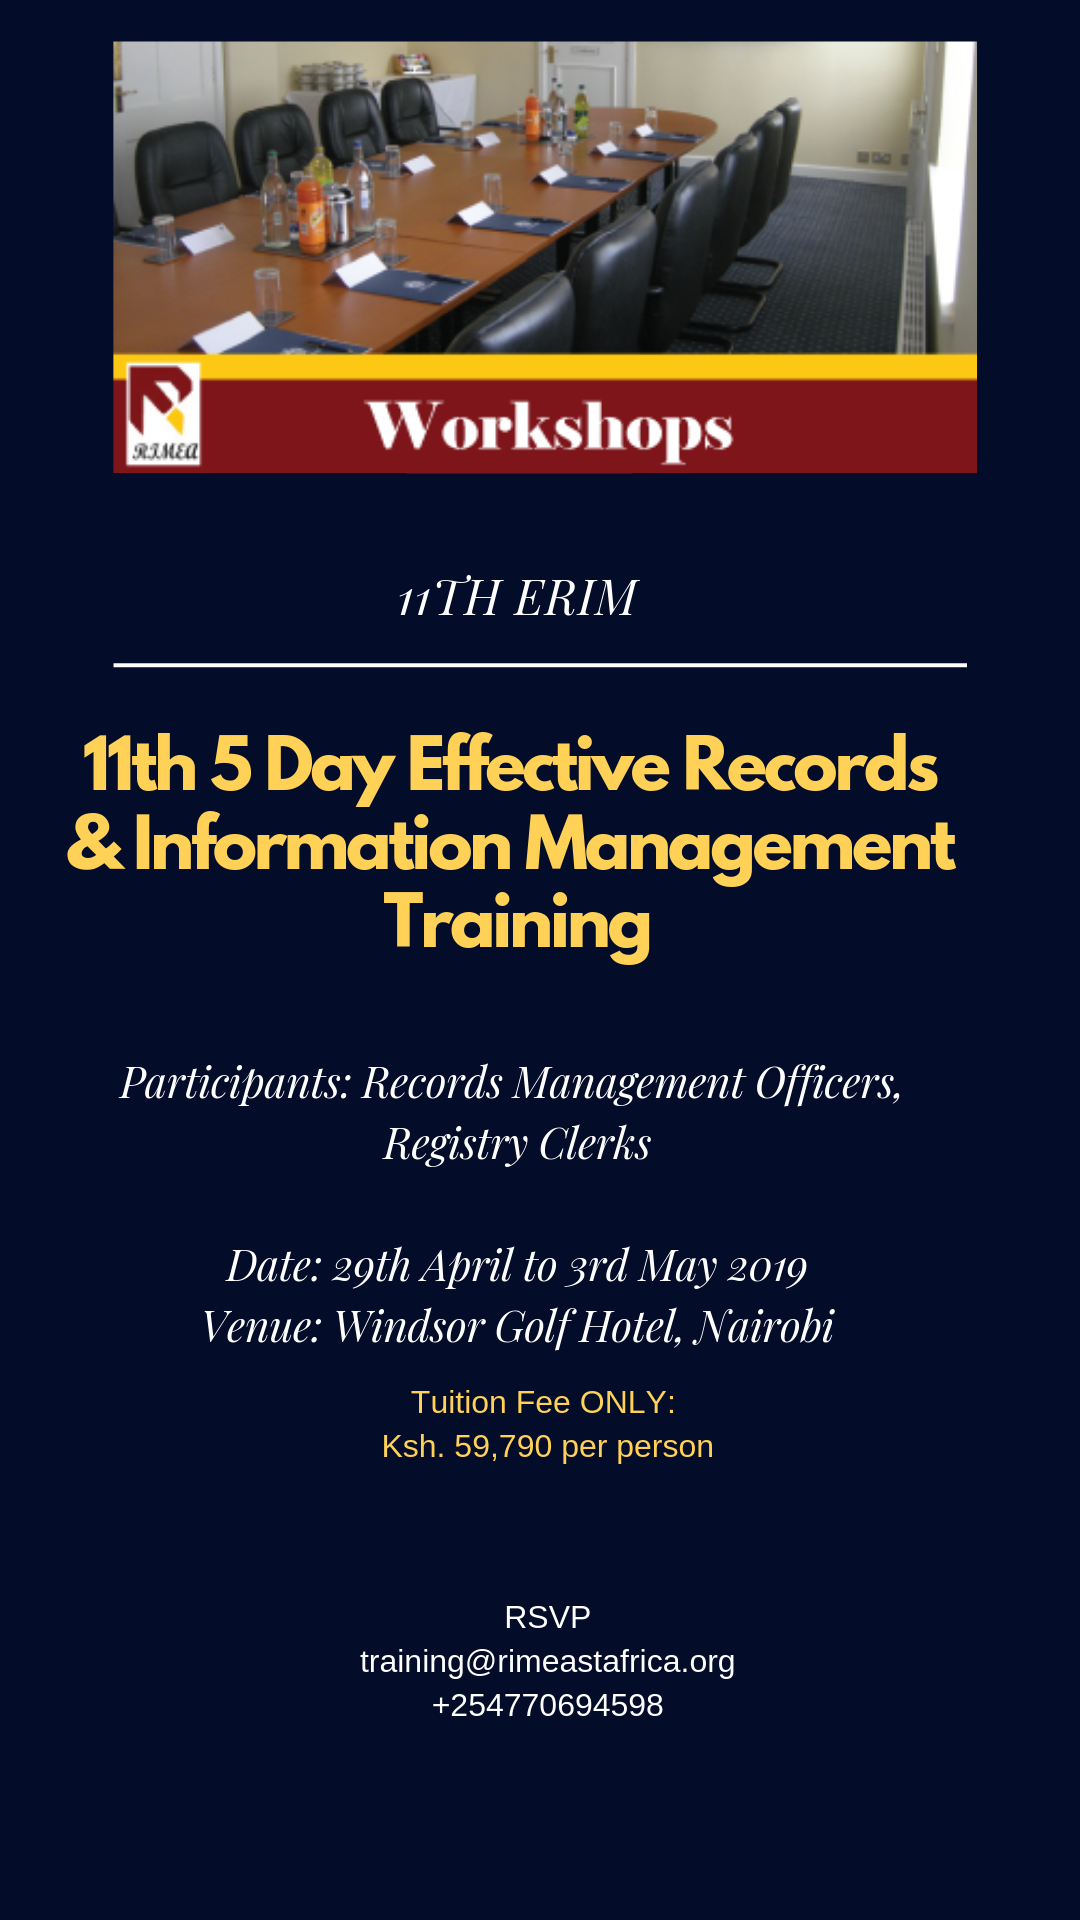 11th 5 Day Effective Records & Information Management Training